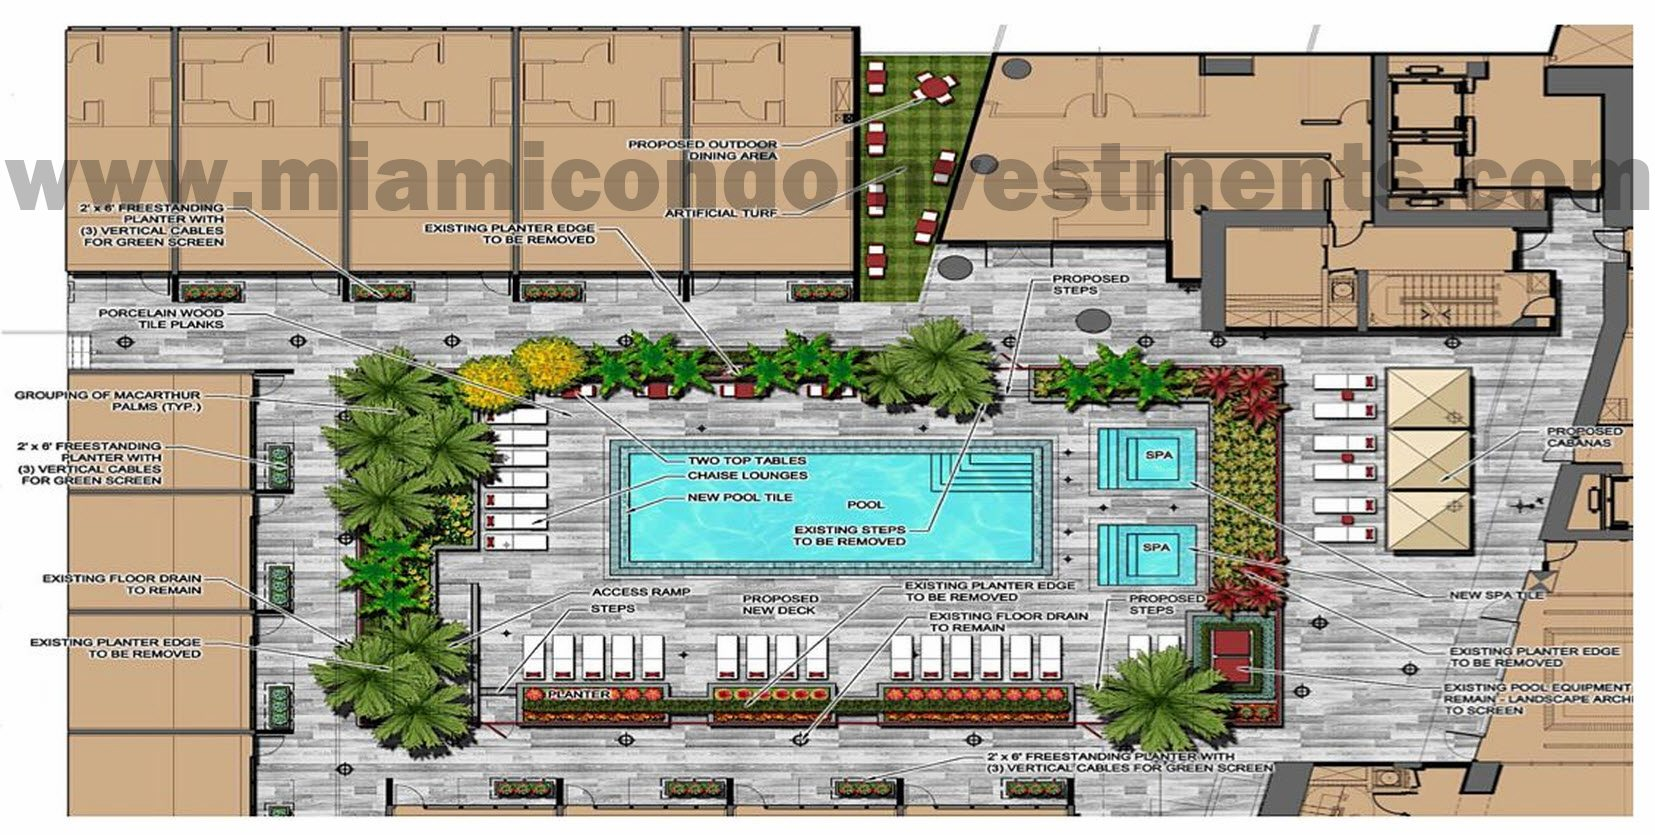 Me Miami pool deck renovation plans